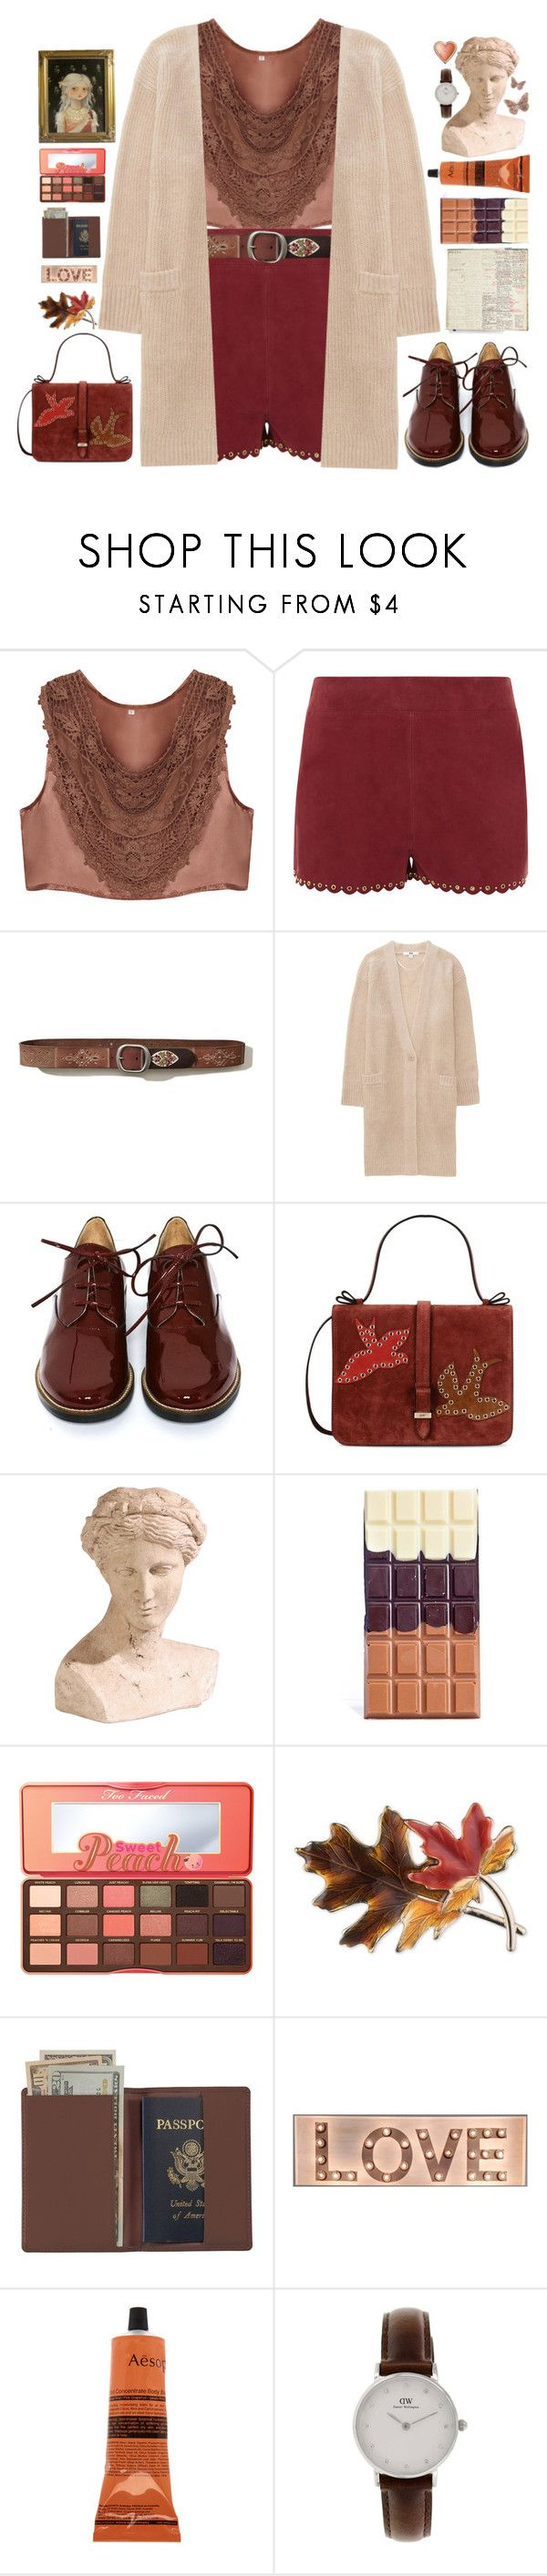 """""""Suede Shorts"""" by doga1 ❤ liked on Polyvore featuring Vanessa Bruno, Hollister Co., Uniqlo, MM6 Maison Margiela, RED Valentino, Ethan Allen, Black Apple, Too Faced Cosmetics, Anne Klein and Royce Leather"""